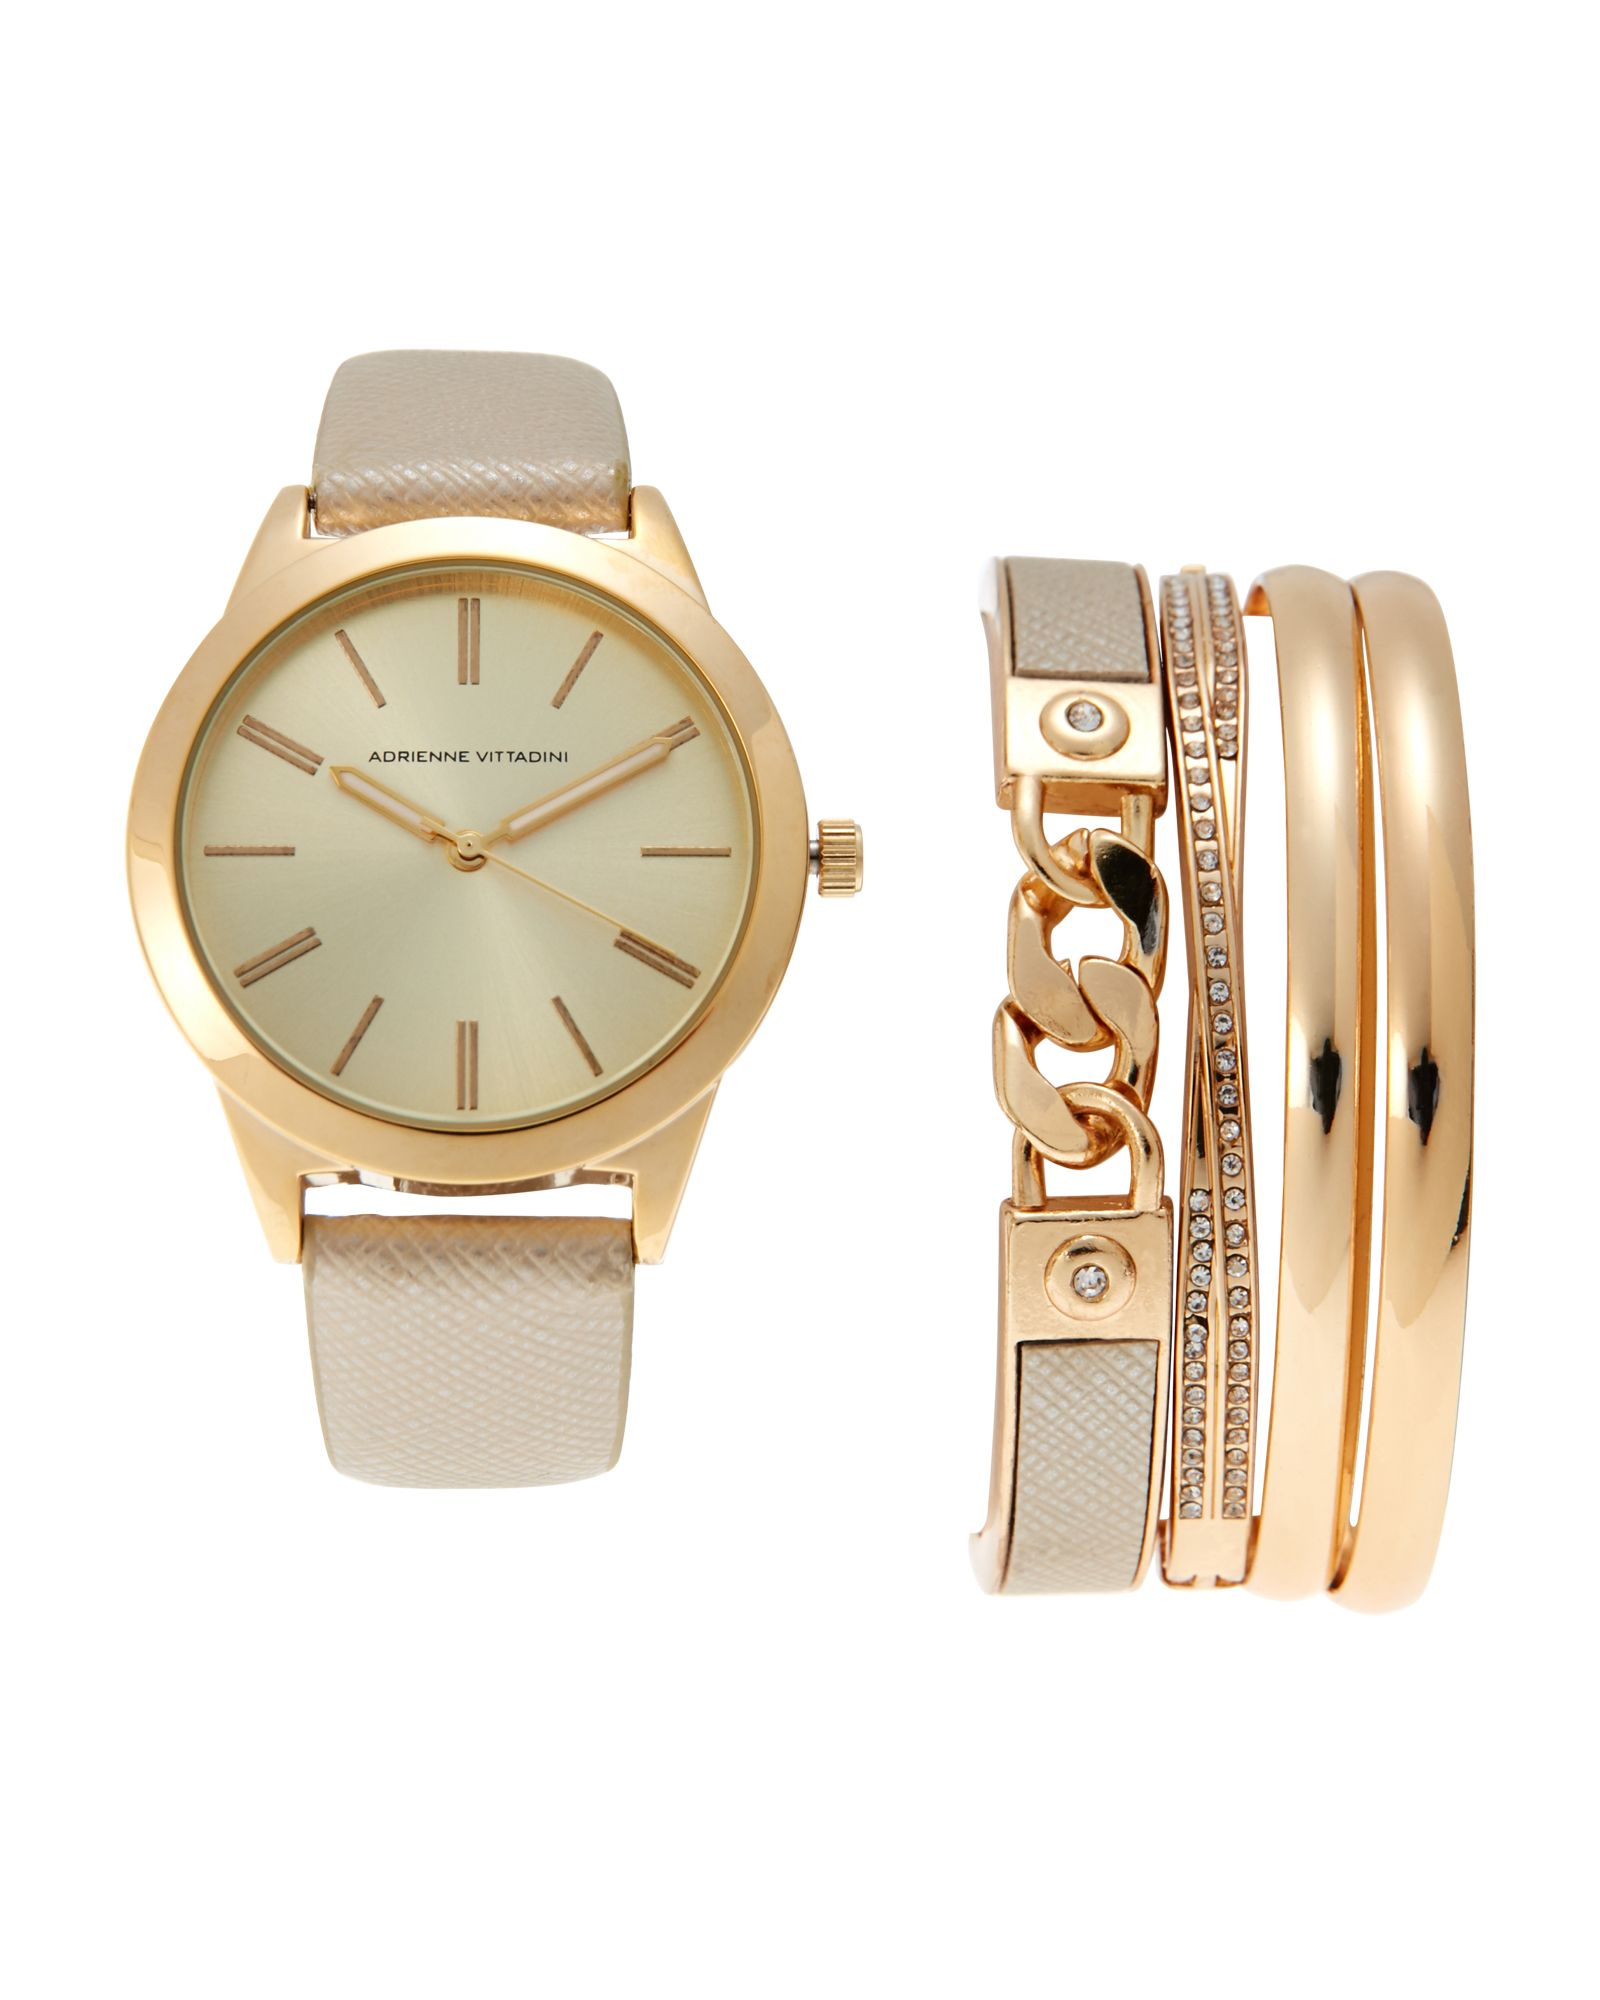 d5cbe78d21a4be Adrienne Vittadini ADST1751 Gold-Tone Watch   Bracelet Set